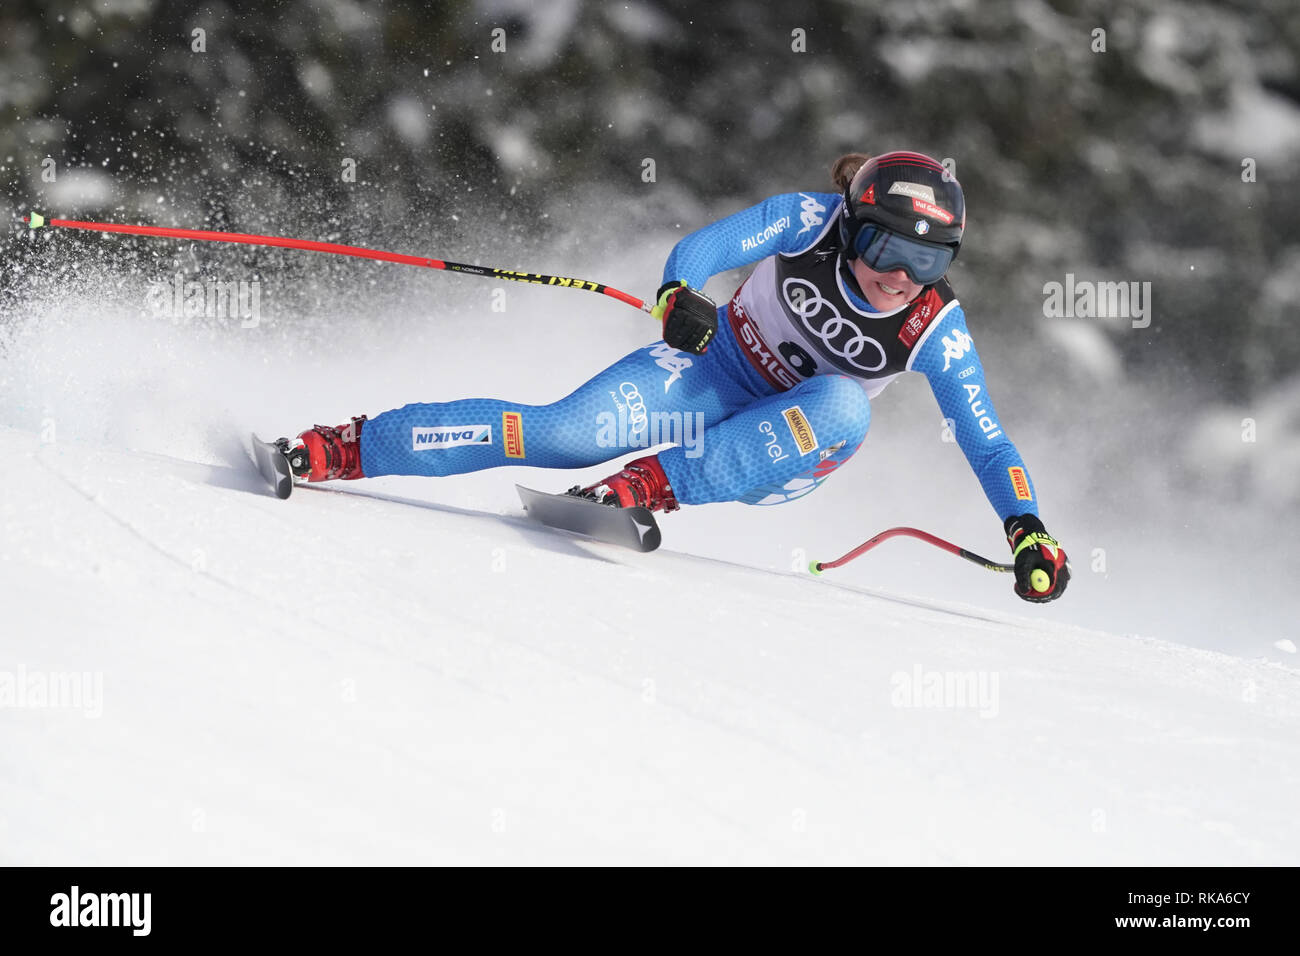 Are, Sweden. 10th Feb, 2019. Alpine skiing, world championship, downhill, ladies: Nicol Delago from Italy on the racetrack. Photo: Michael Kappeler/dpa Credit: dpa picture alliance/Alamy Live News - Stock Image